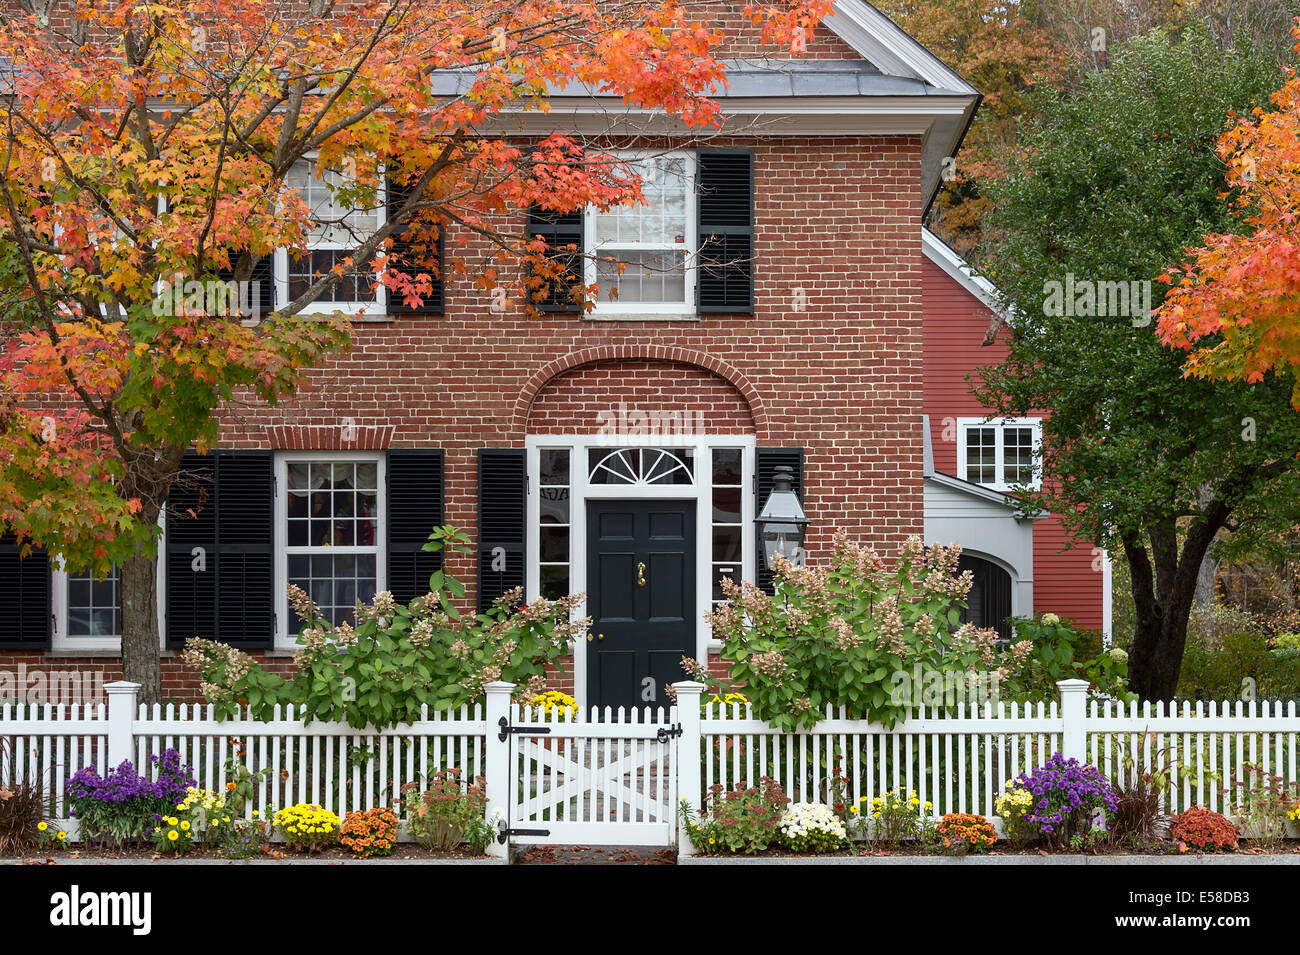 Charmante maison en brique de la Nouvelle-Angleterre avec picket fence, Grafton, Massachusetts, USA Photo Stock